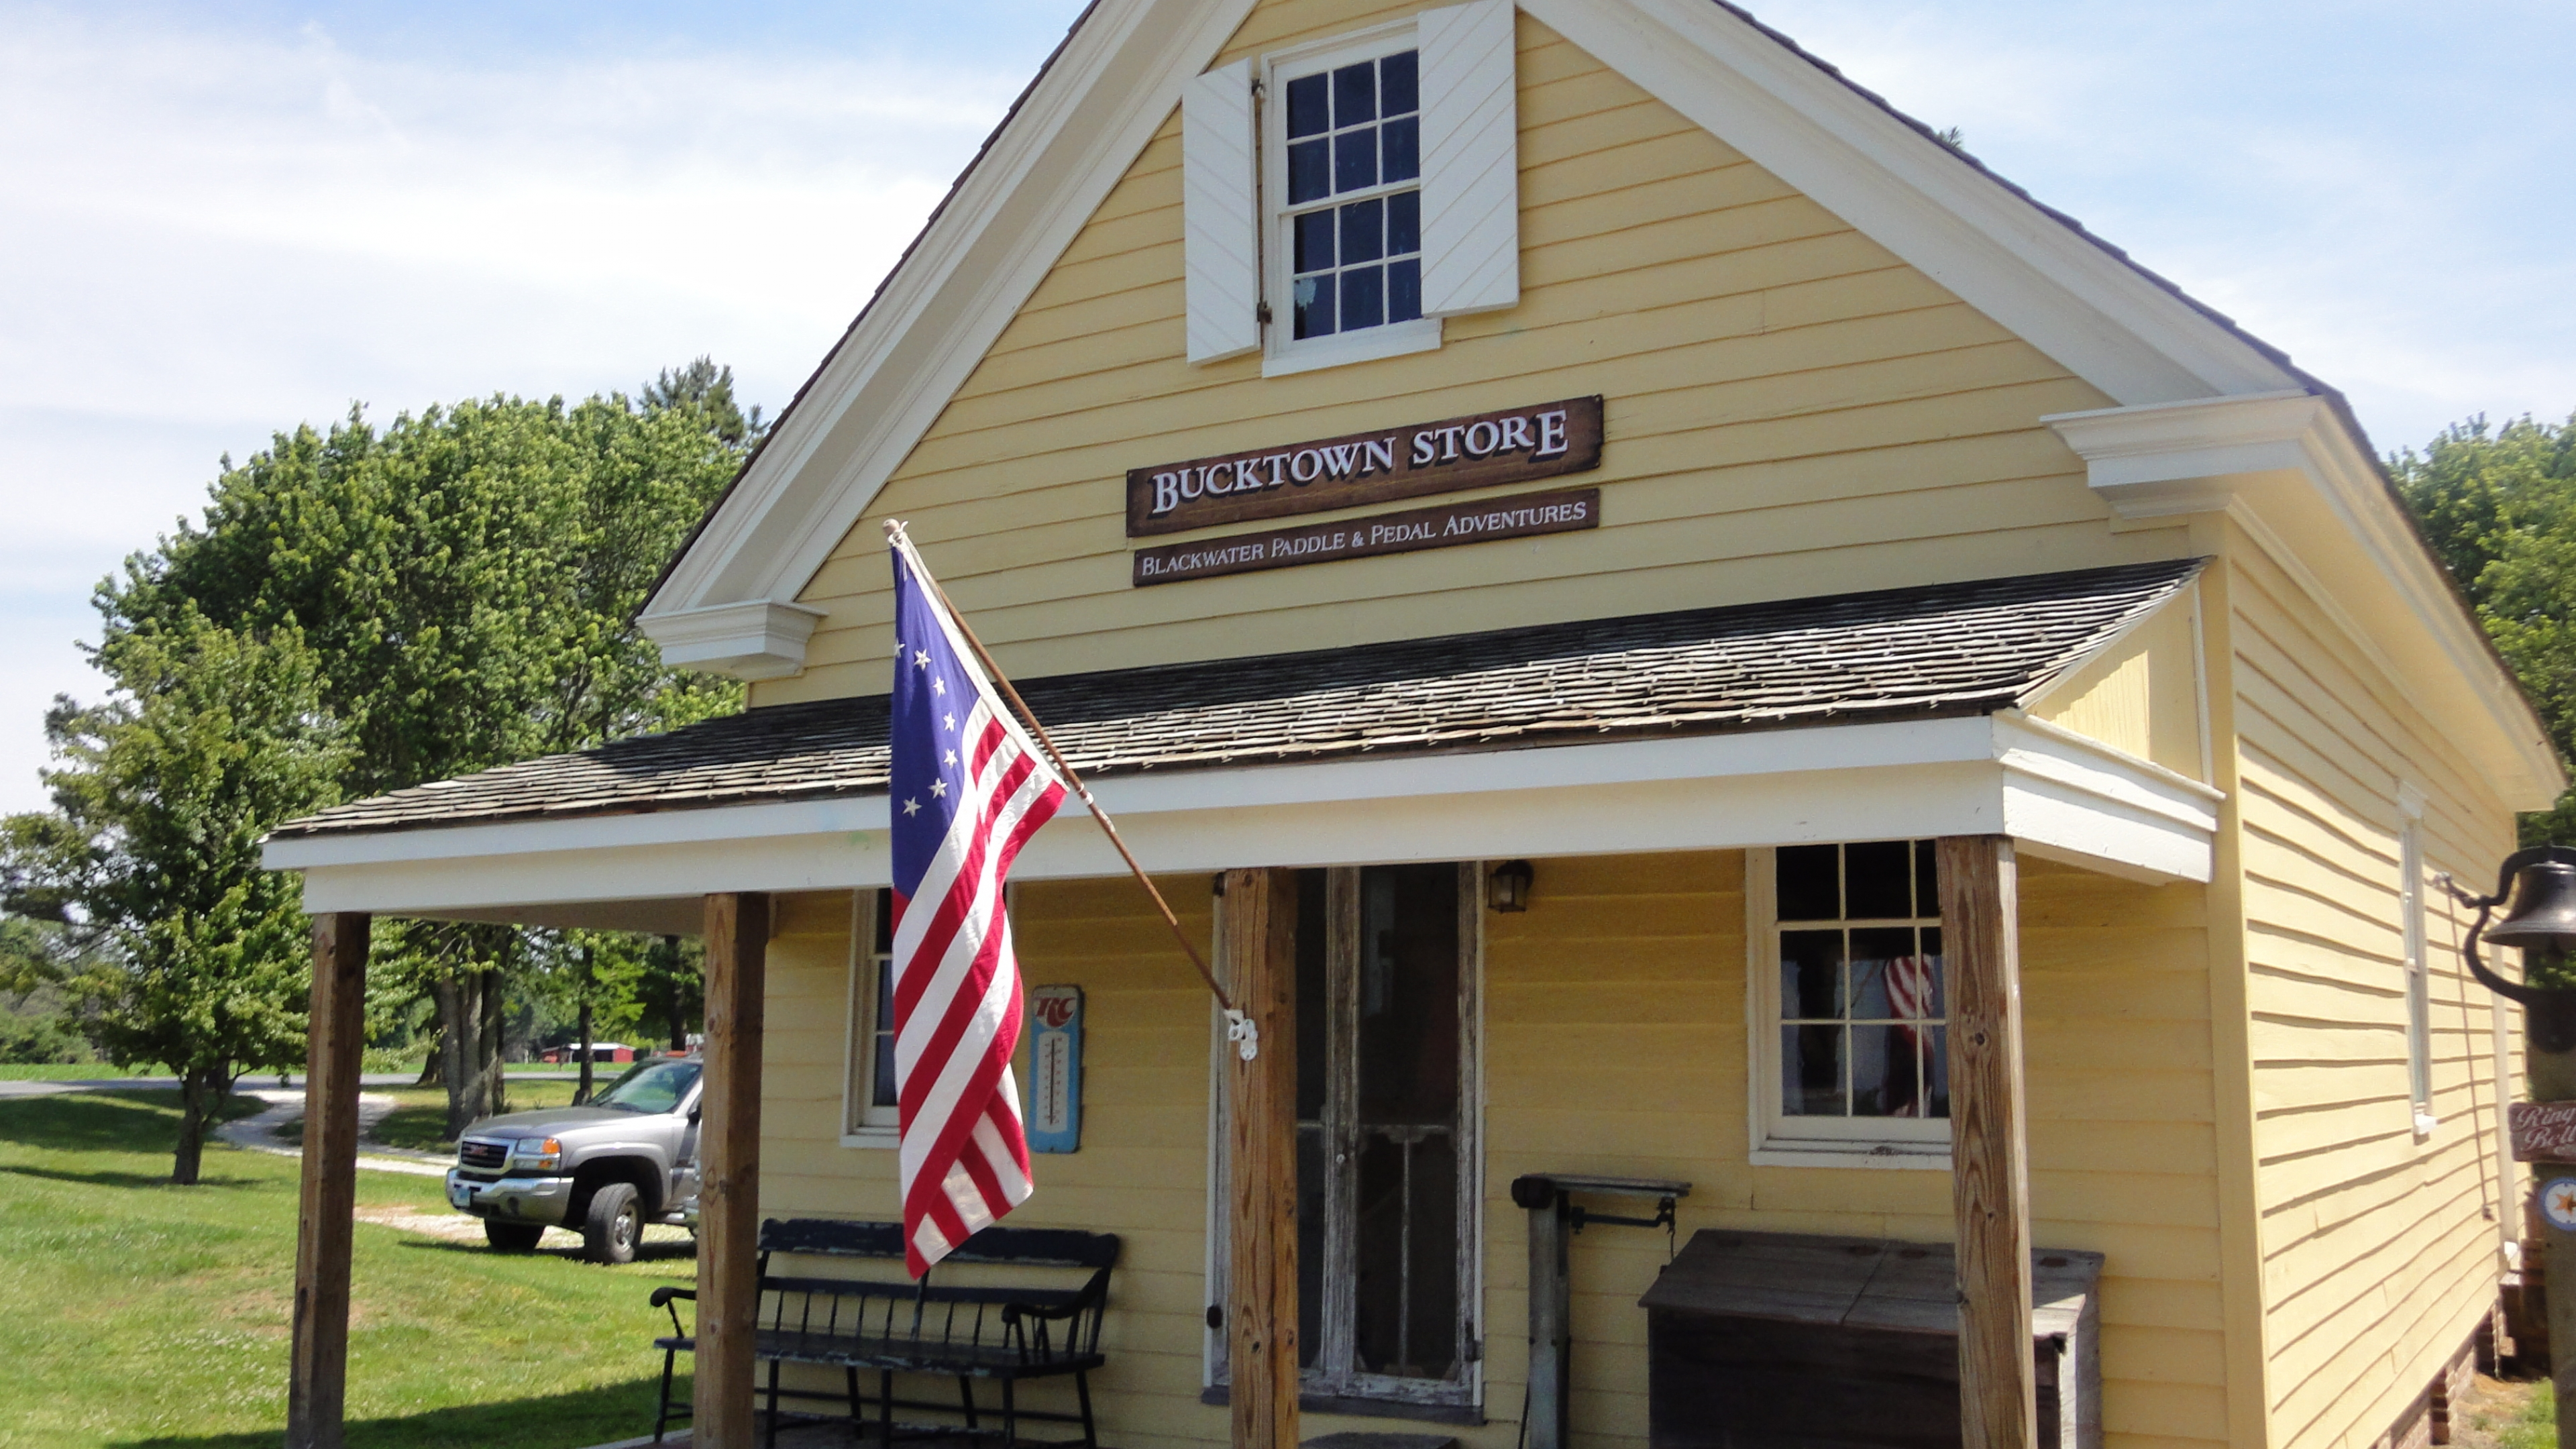 The front of the Bucktown Village Store in Maryland